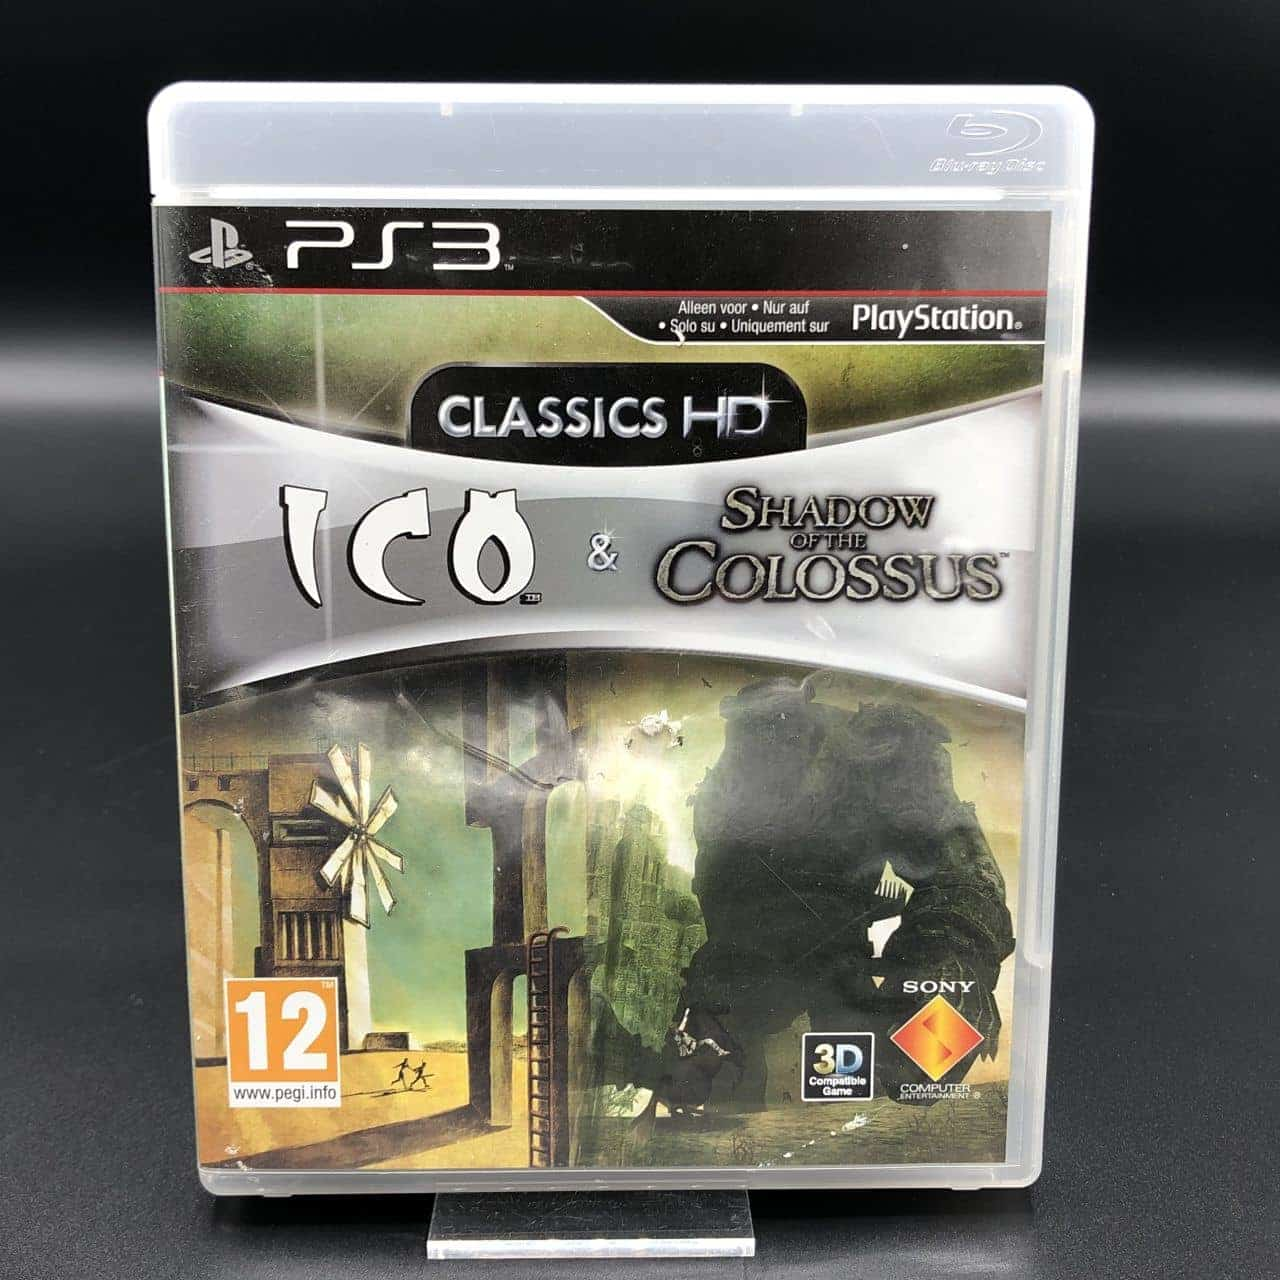 PS3 Ico & Shadow of the Colossus Collection (Classics HD) (ohne Anleitung) (Sehr gut)